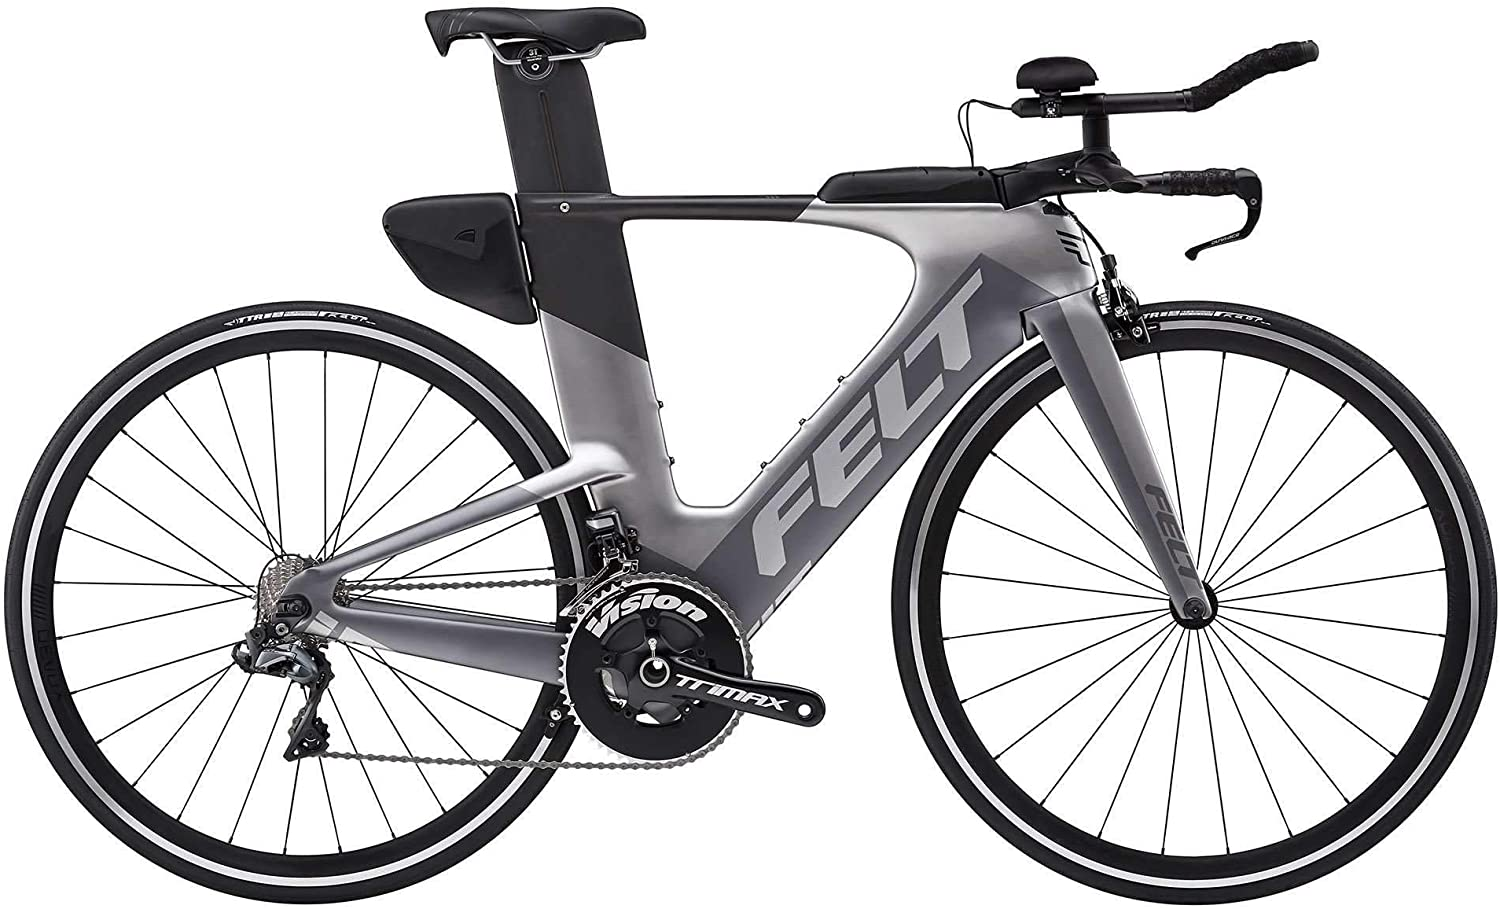 7 best Triathlon bikes under 3000 dollars in 2020